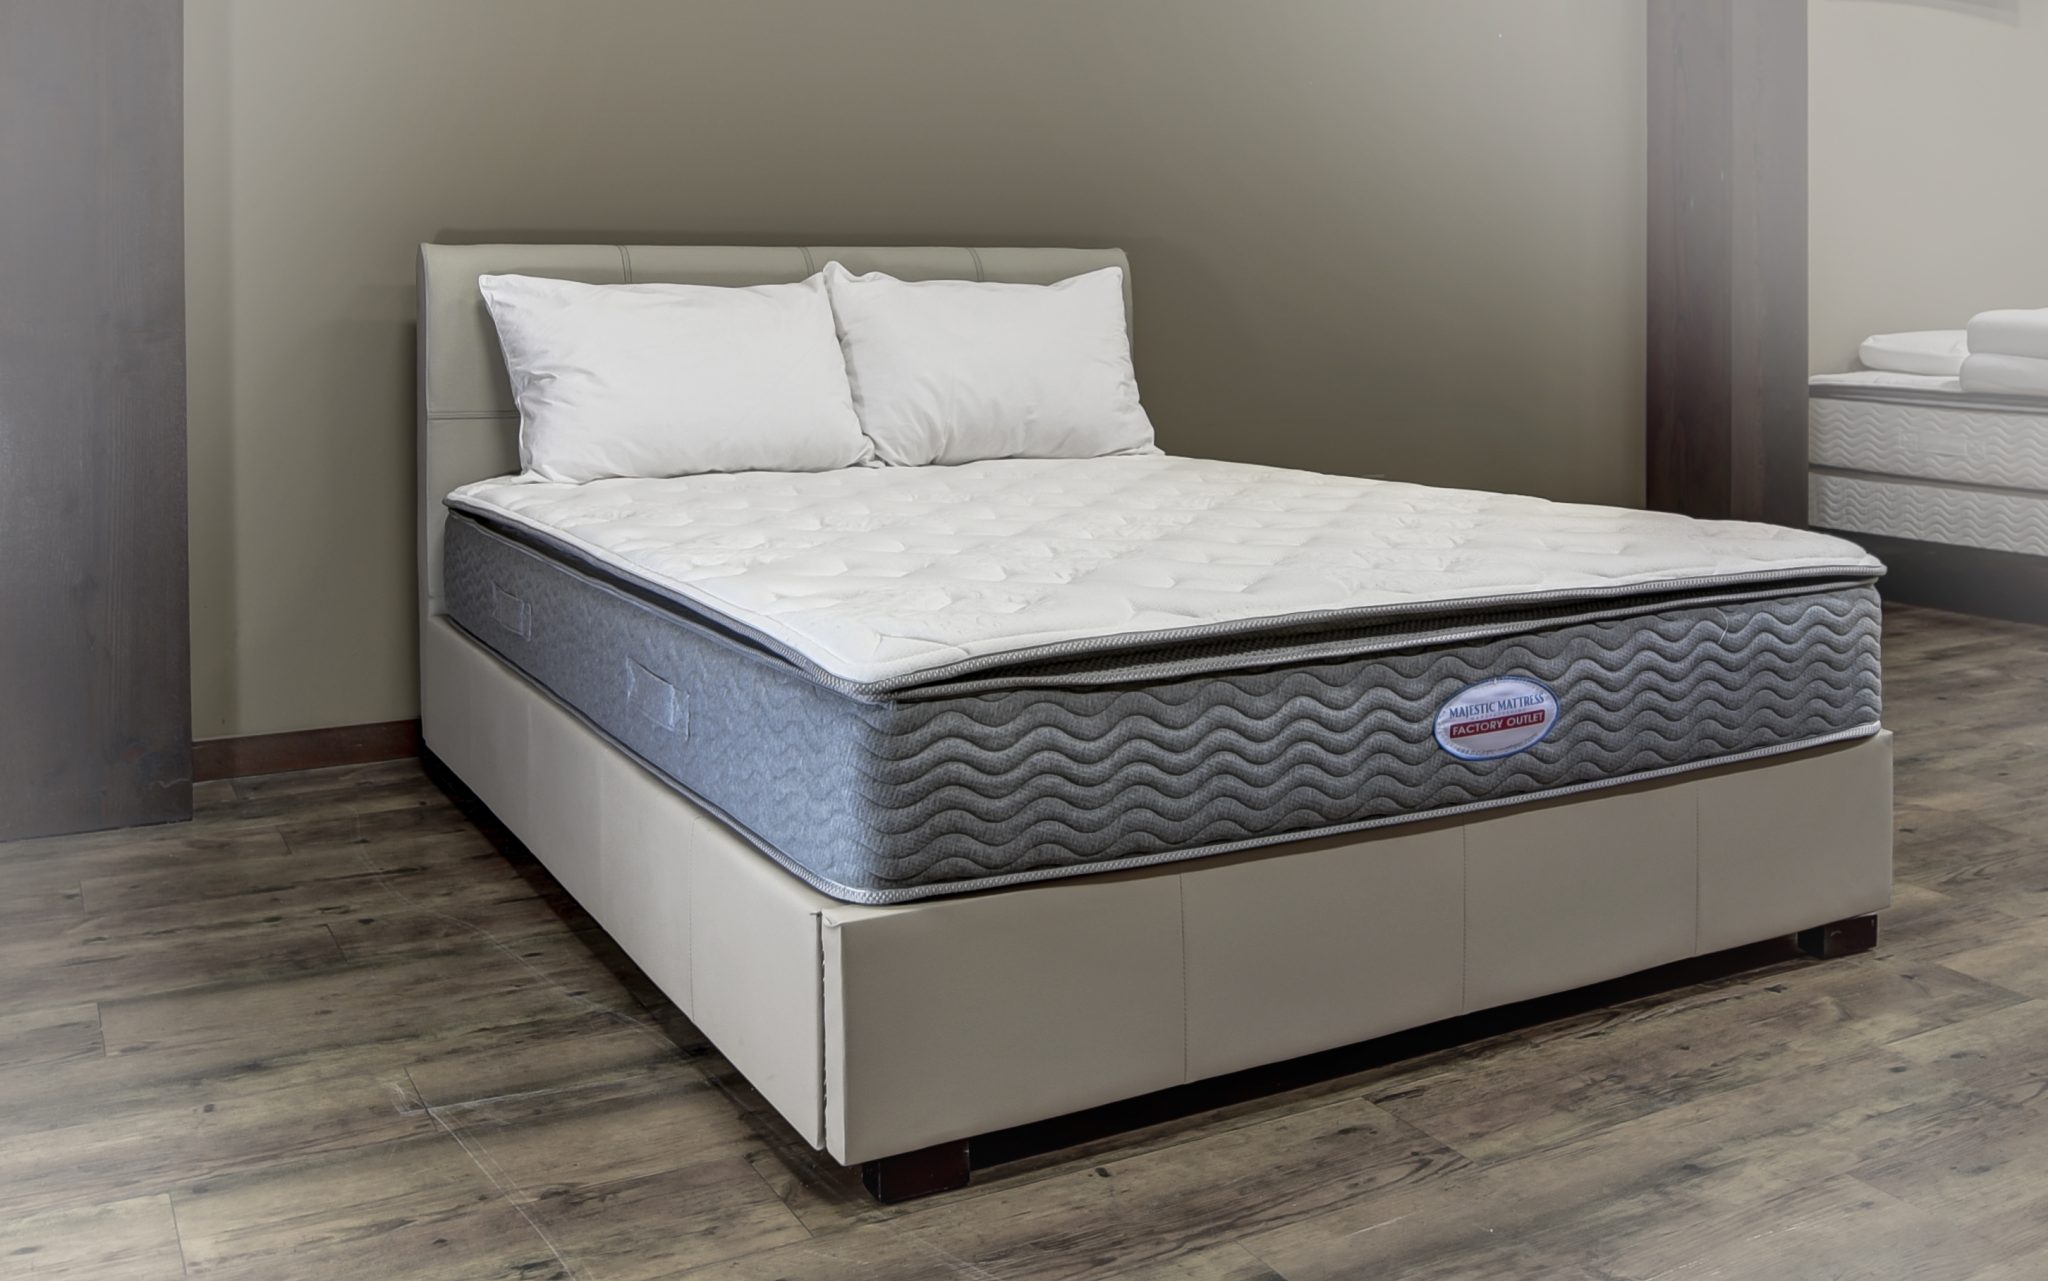 reviews medium topper beautyrest wayfair simmons top pillow pdx recharge mattress mattresses